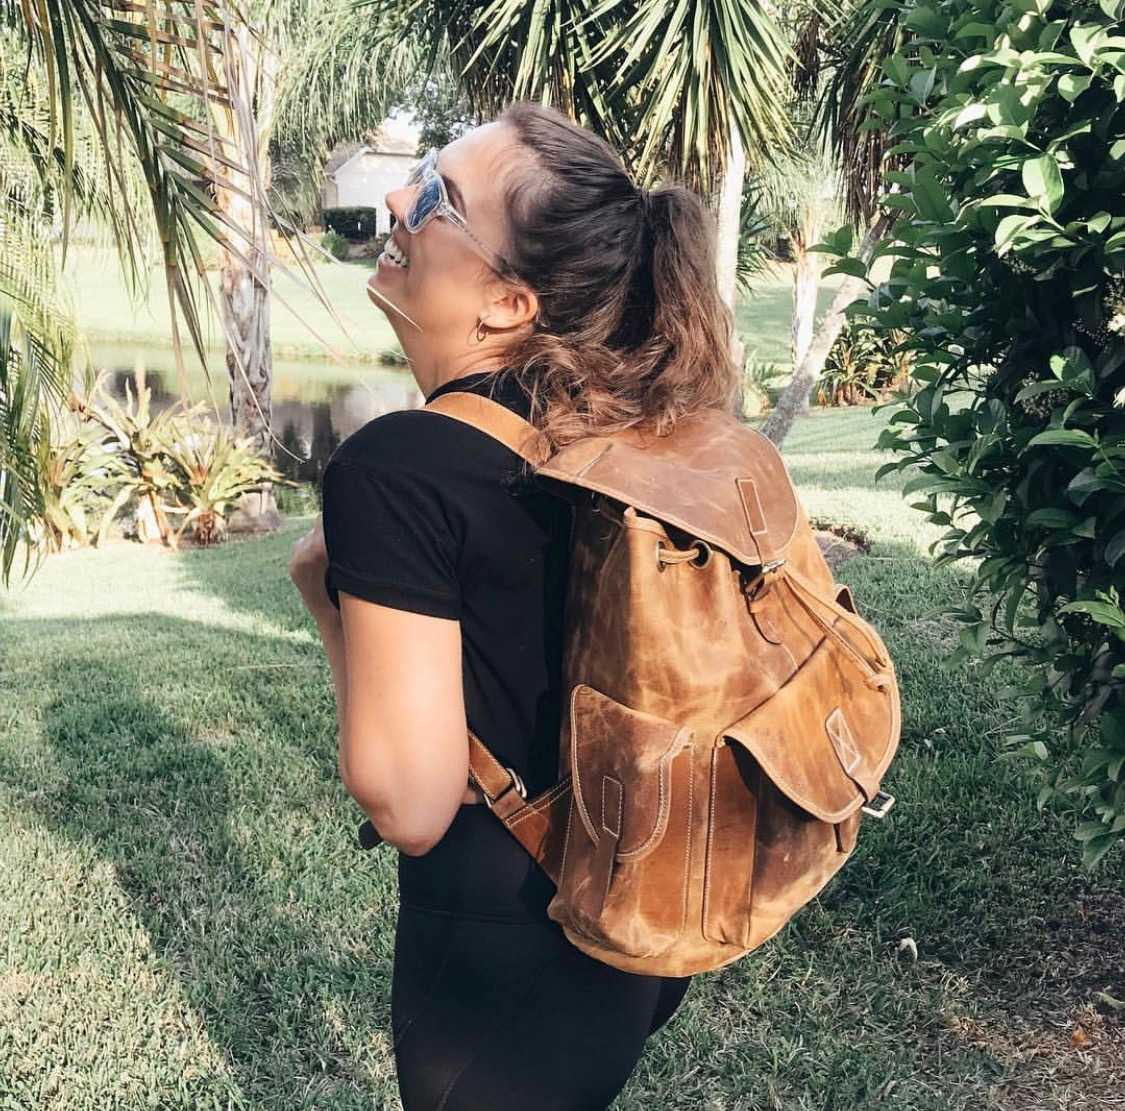 Leather Hiking Backpack  https://highonleather.com/collections/brown-leather-backpack/products/leather-hiking-backpack …  #travelbag #travelbook #travellers #travelblogger #travelgram #travel #traveling #naturepic.twitter.com/H3lqUAyyF3